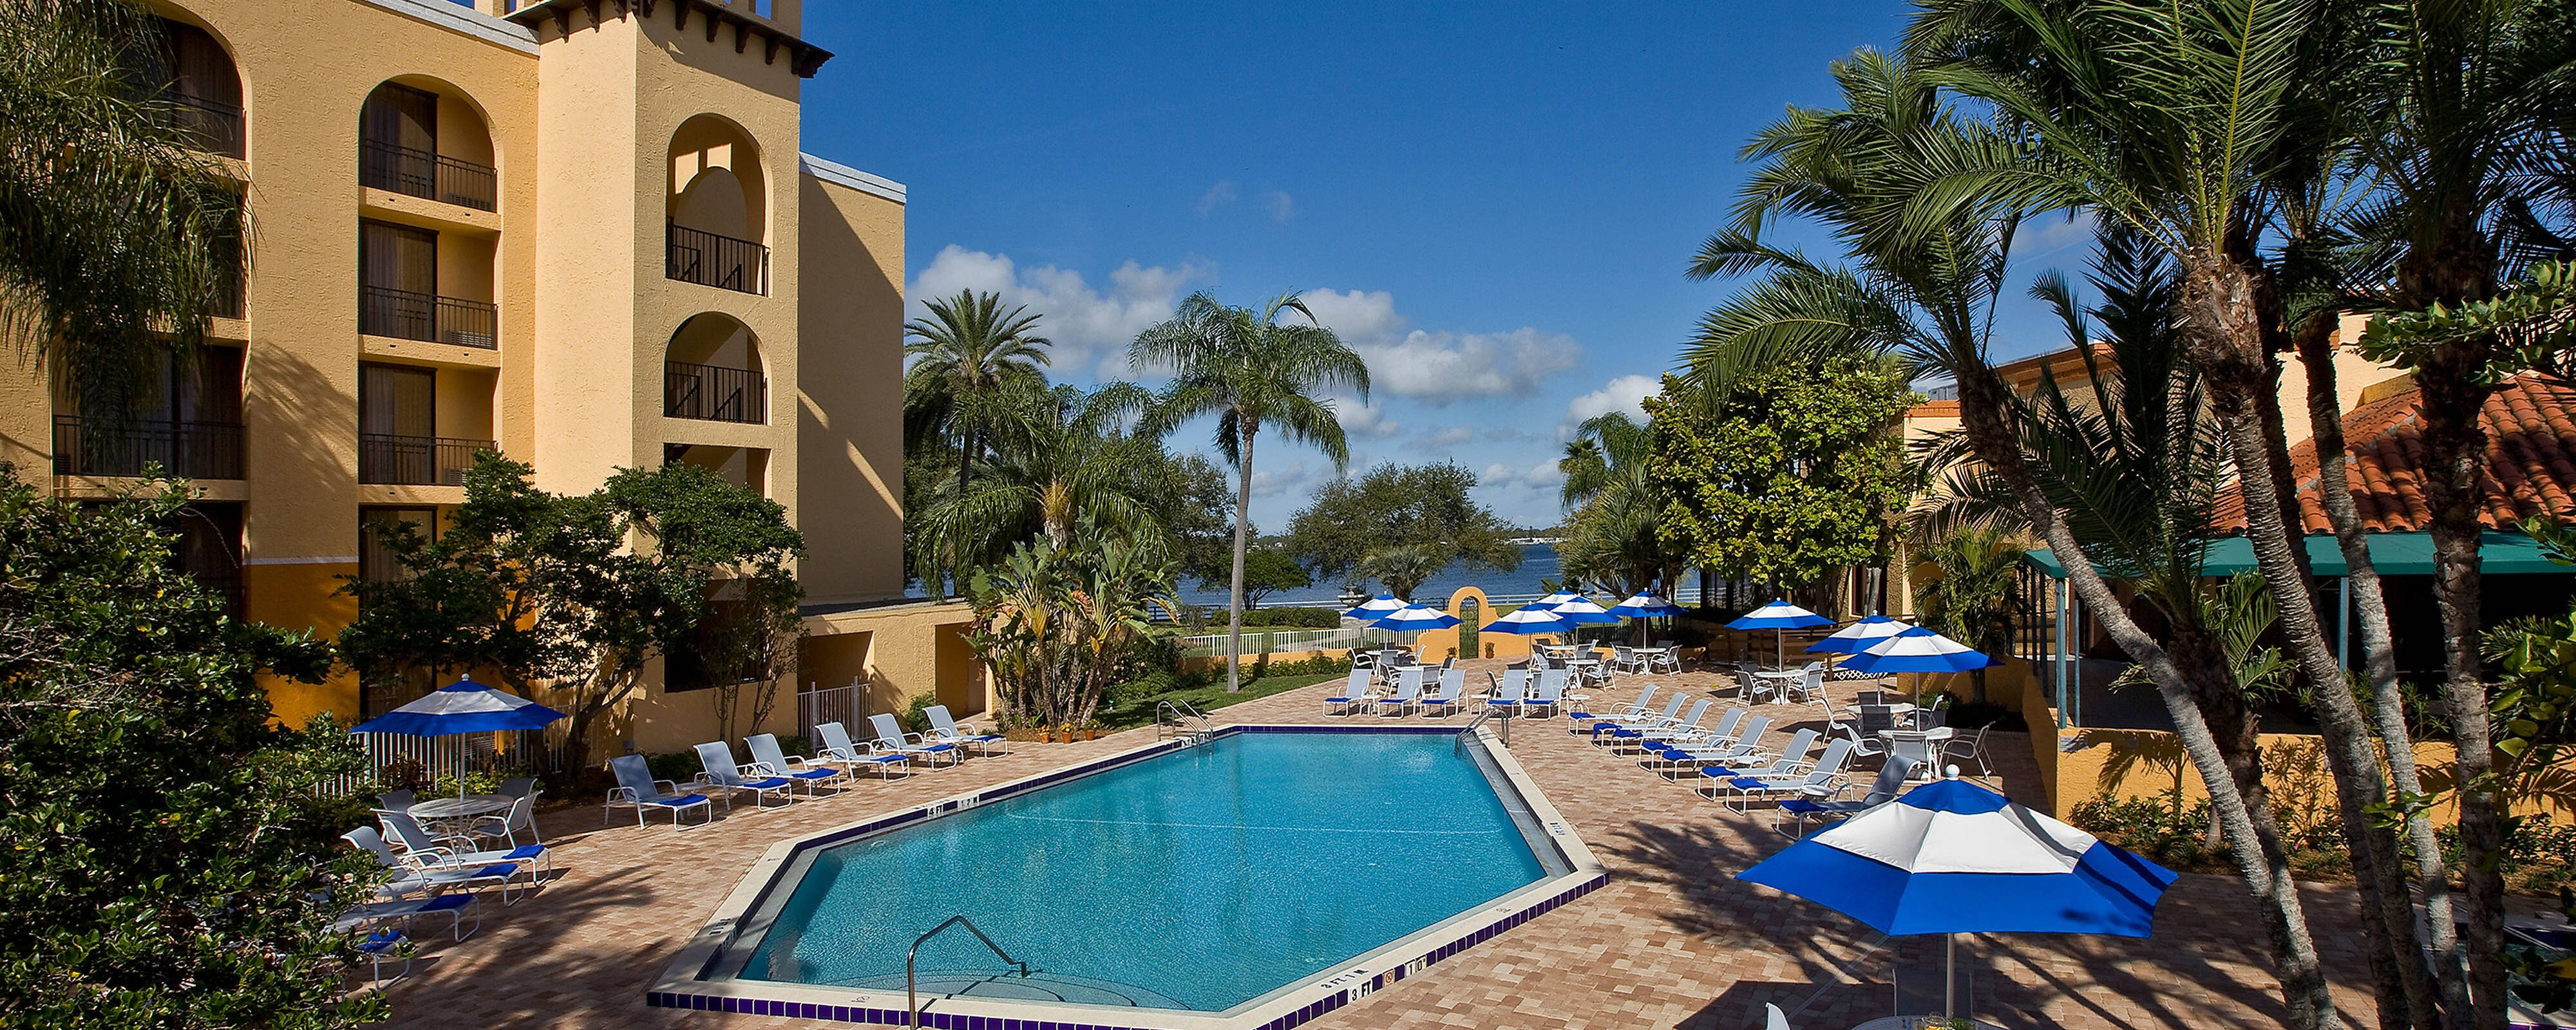 Hotel In Bradenton Outdoor Pool